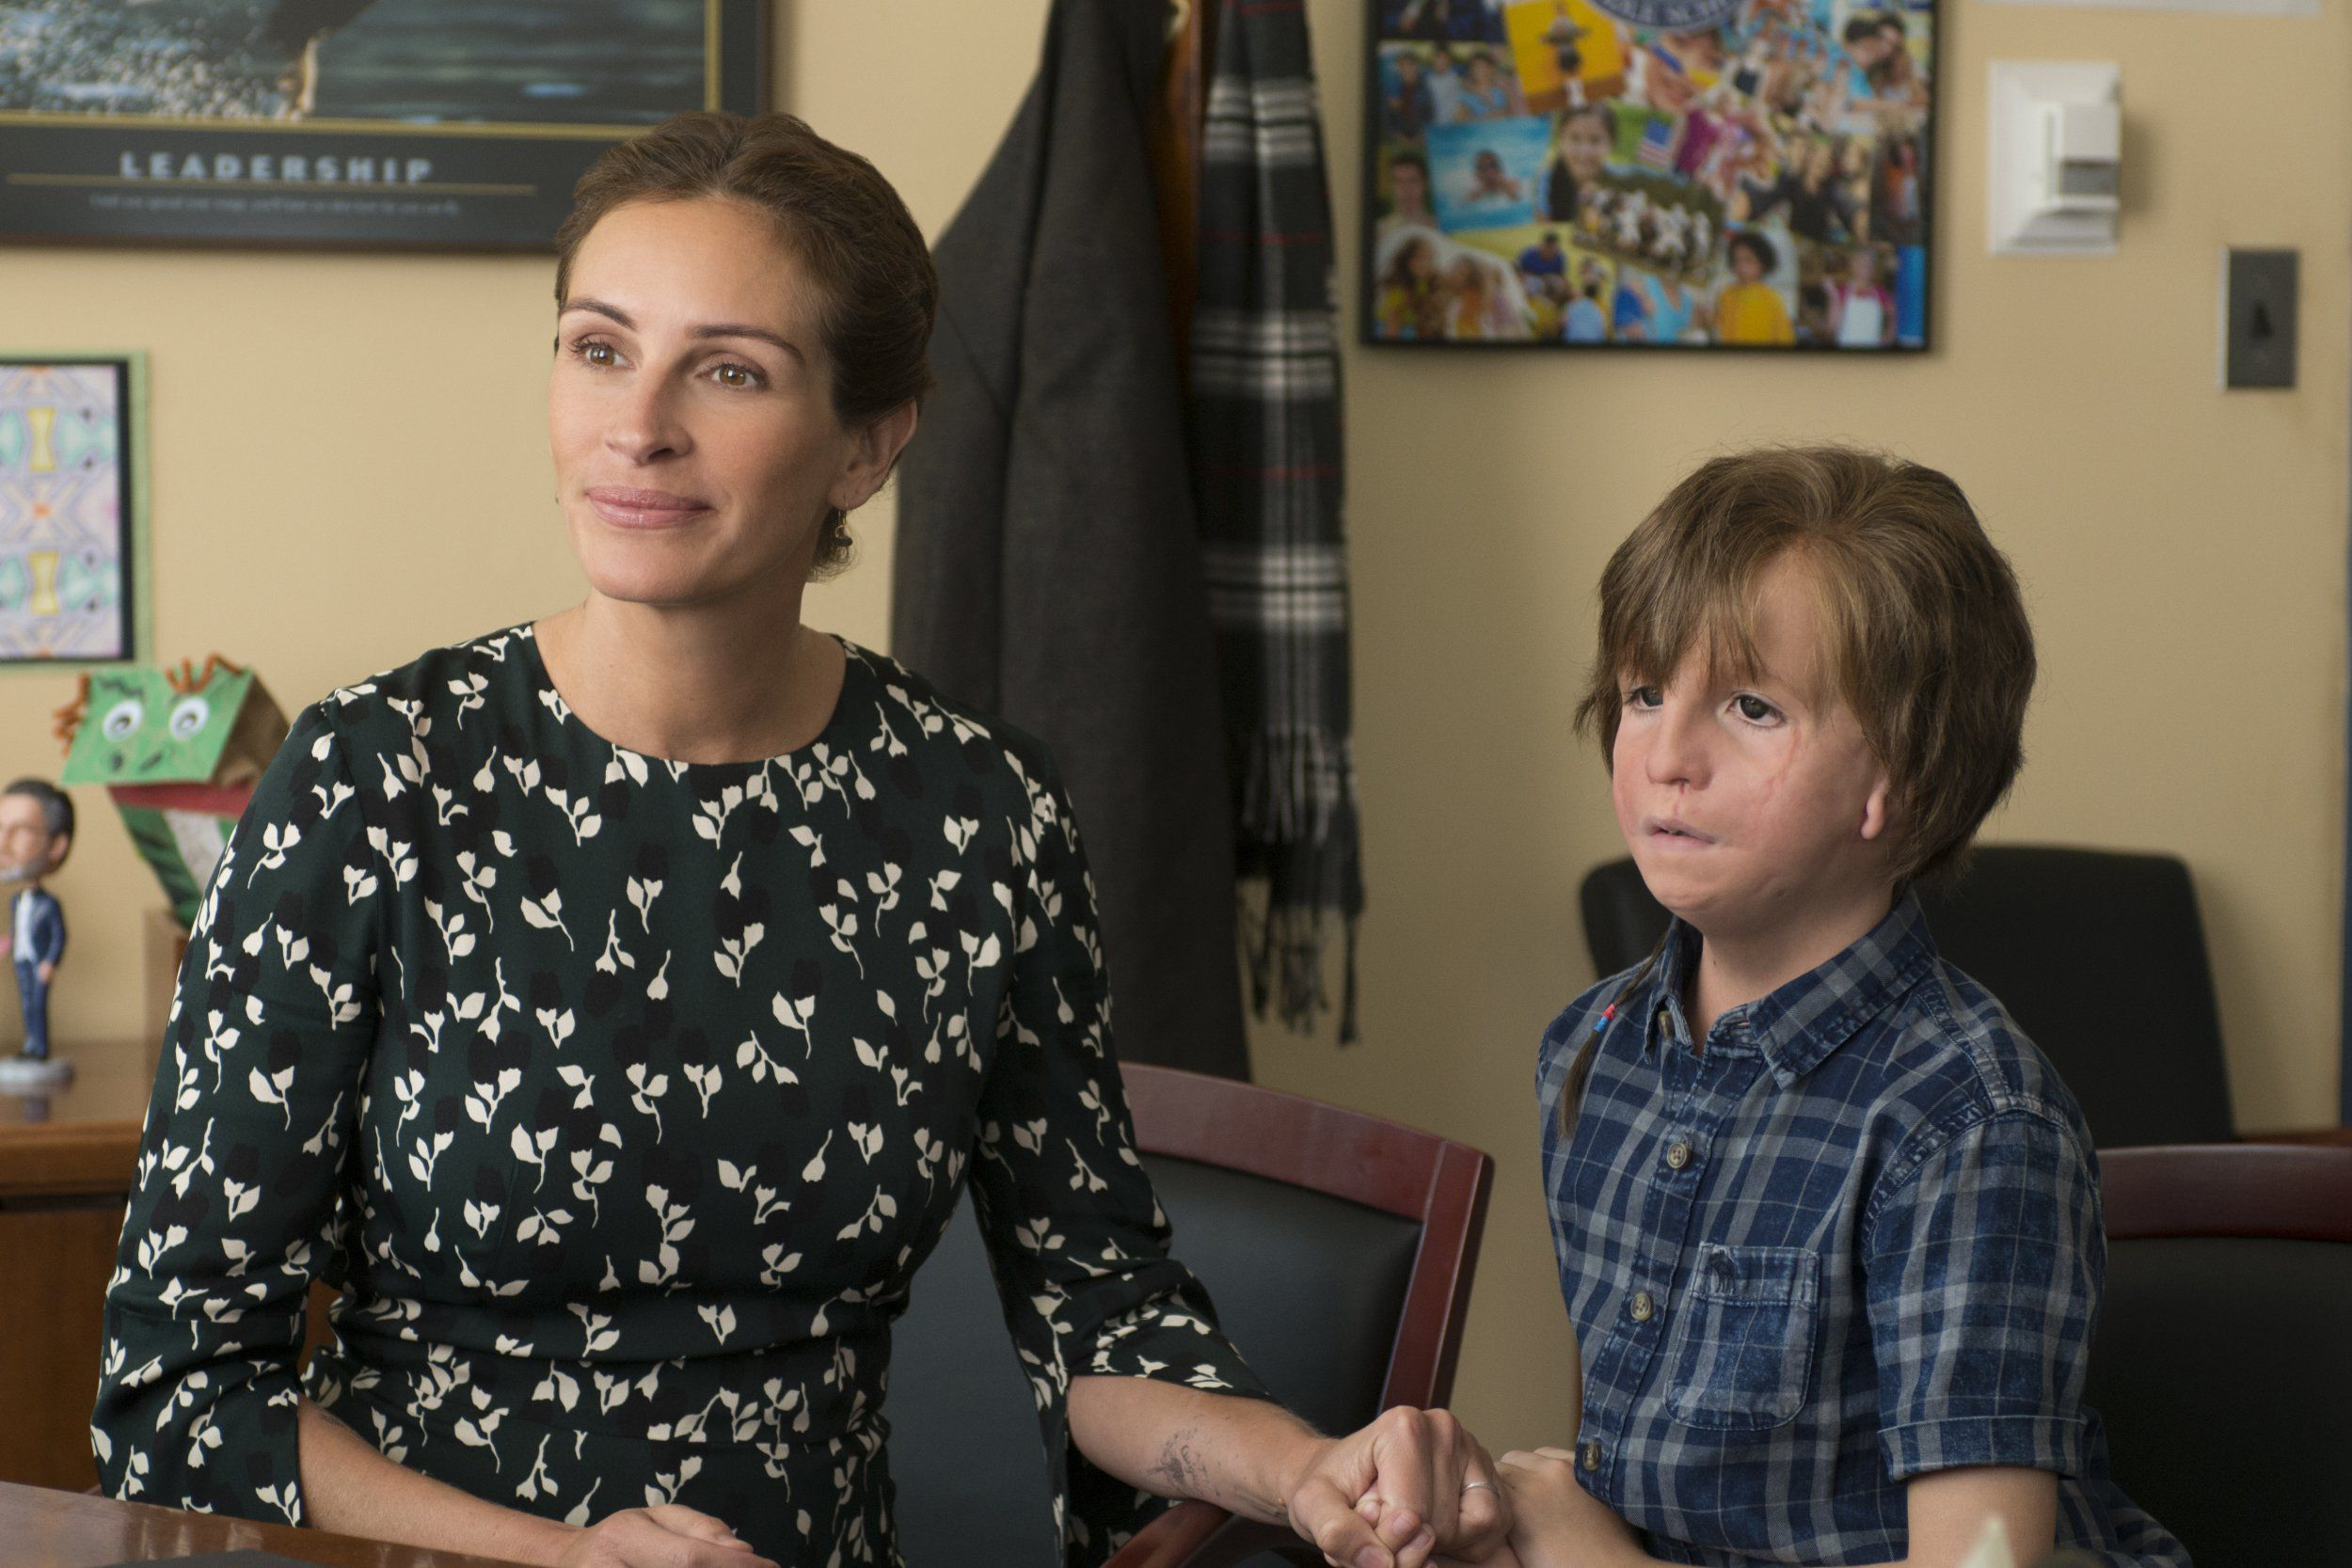 Wonder spreads the saccharine sentiment on a bit too thick – but a little sweetness never hurt anybody